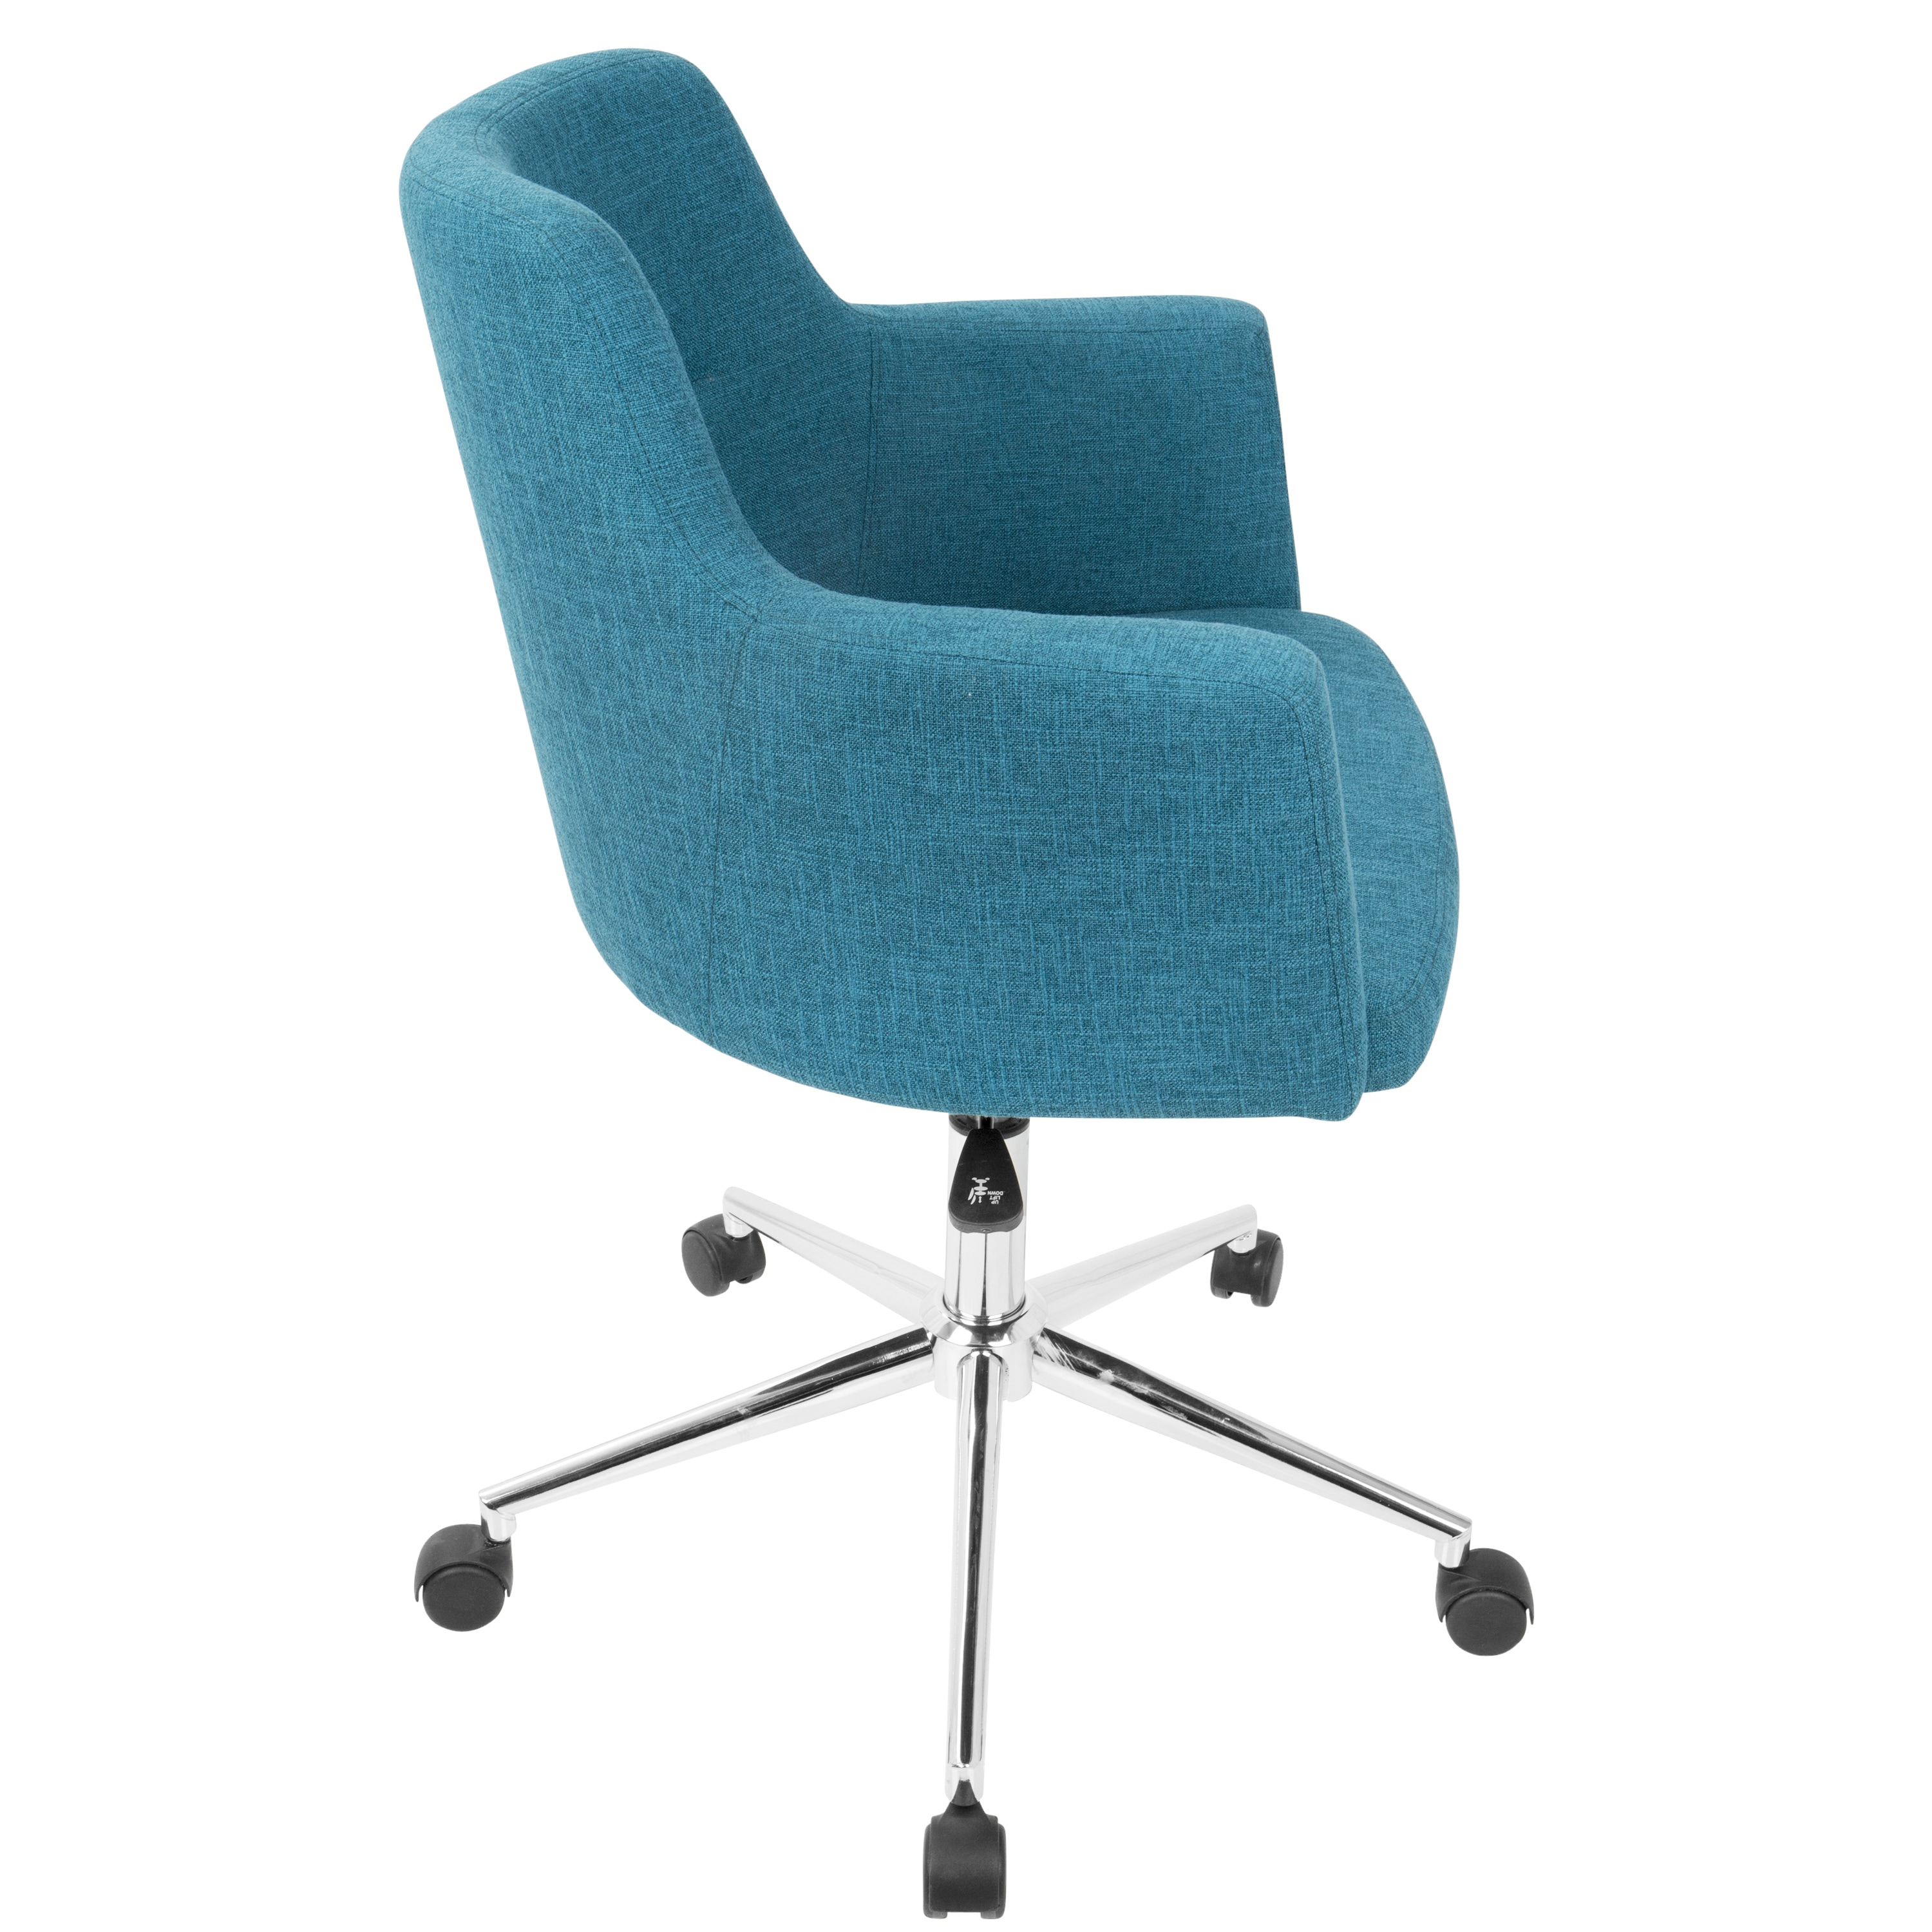 Andrew Contemporary Office Chair In Fabric On Free Shipping Today 16722566